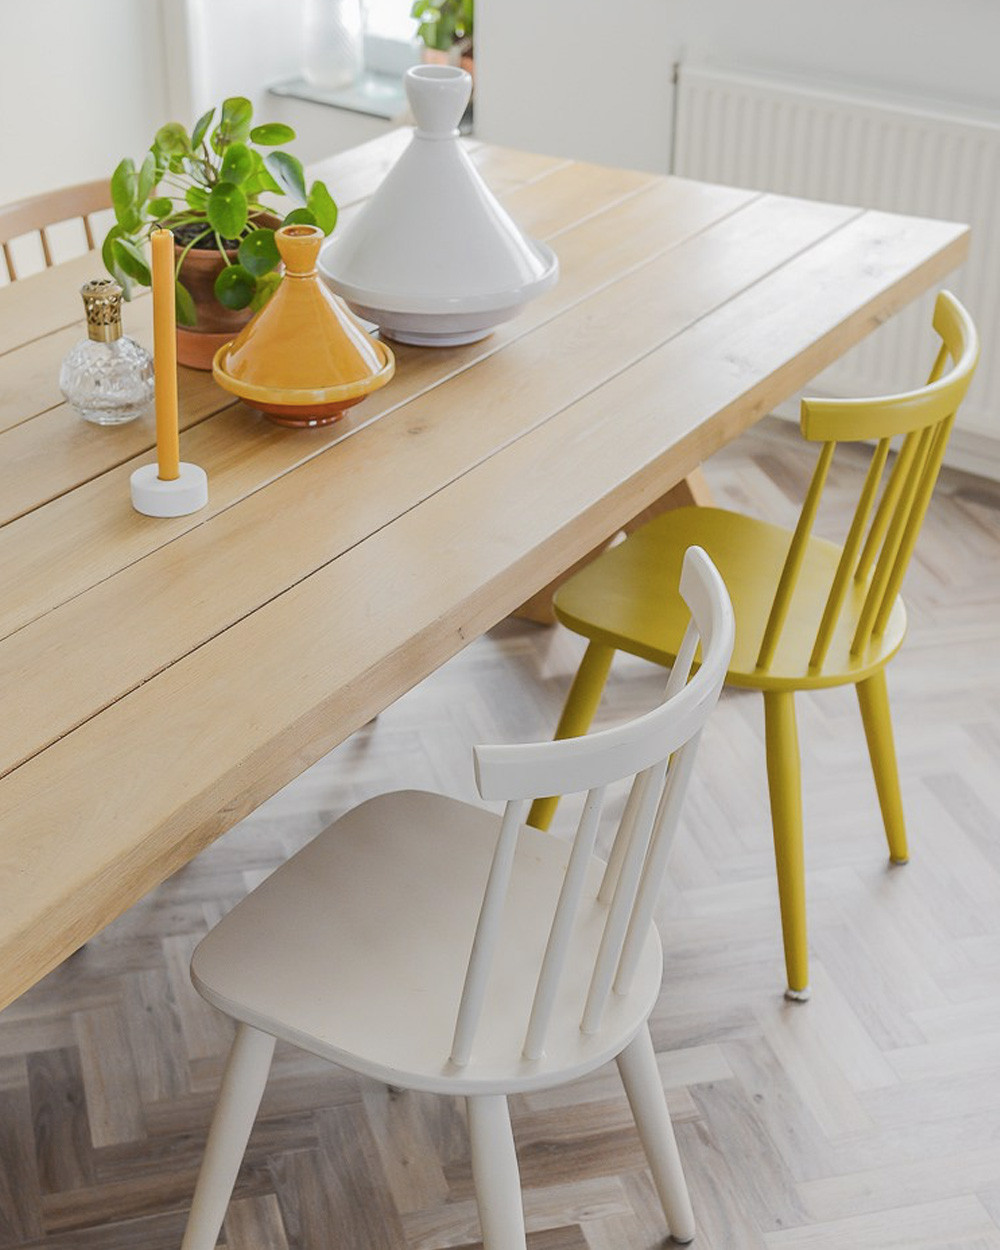 Yellow wooden chair whitewash dining room table white wooden chair vase with plan single candle holder with yellow candle white and yellow tagine on table herringbone flooring